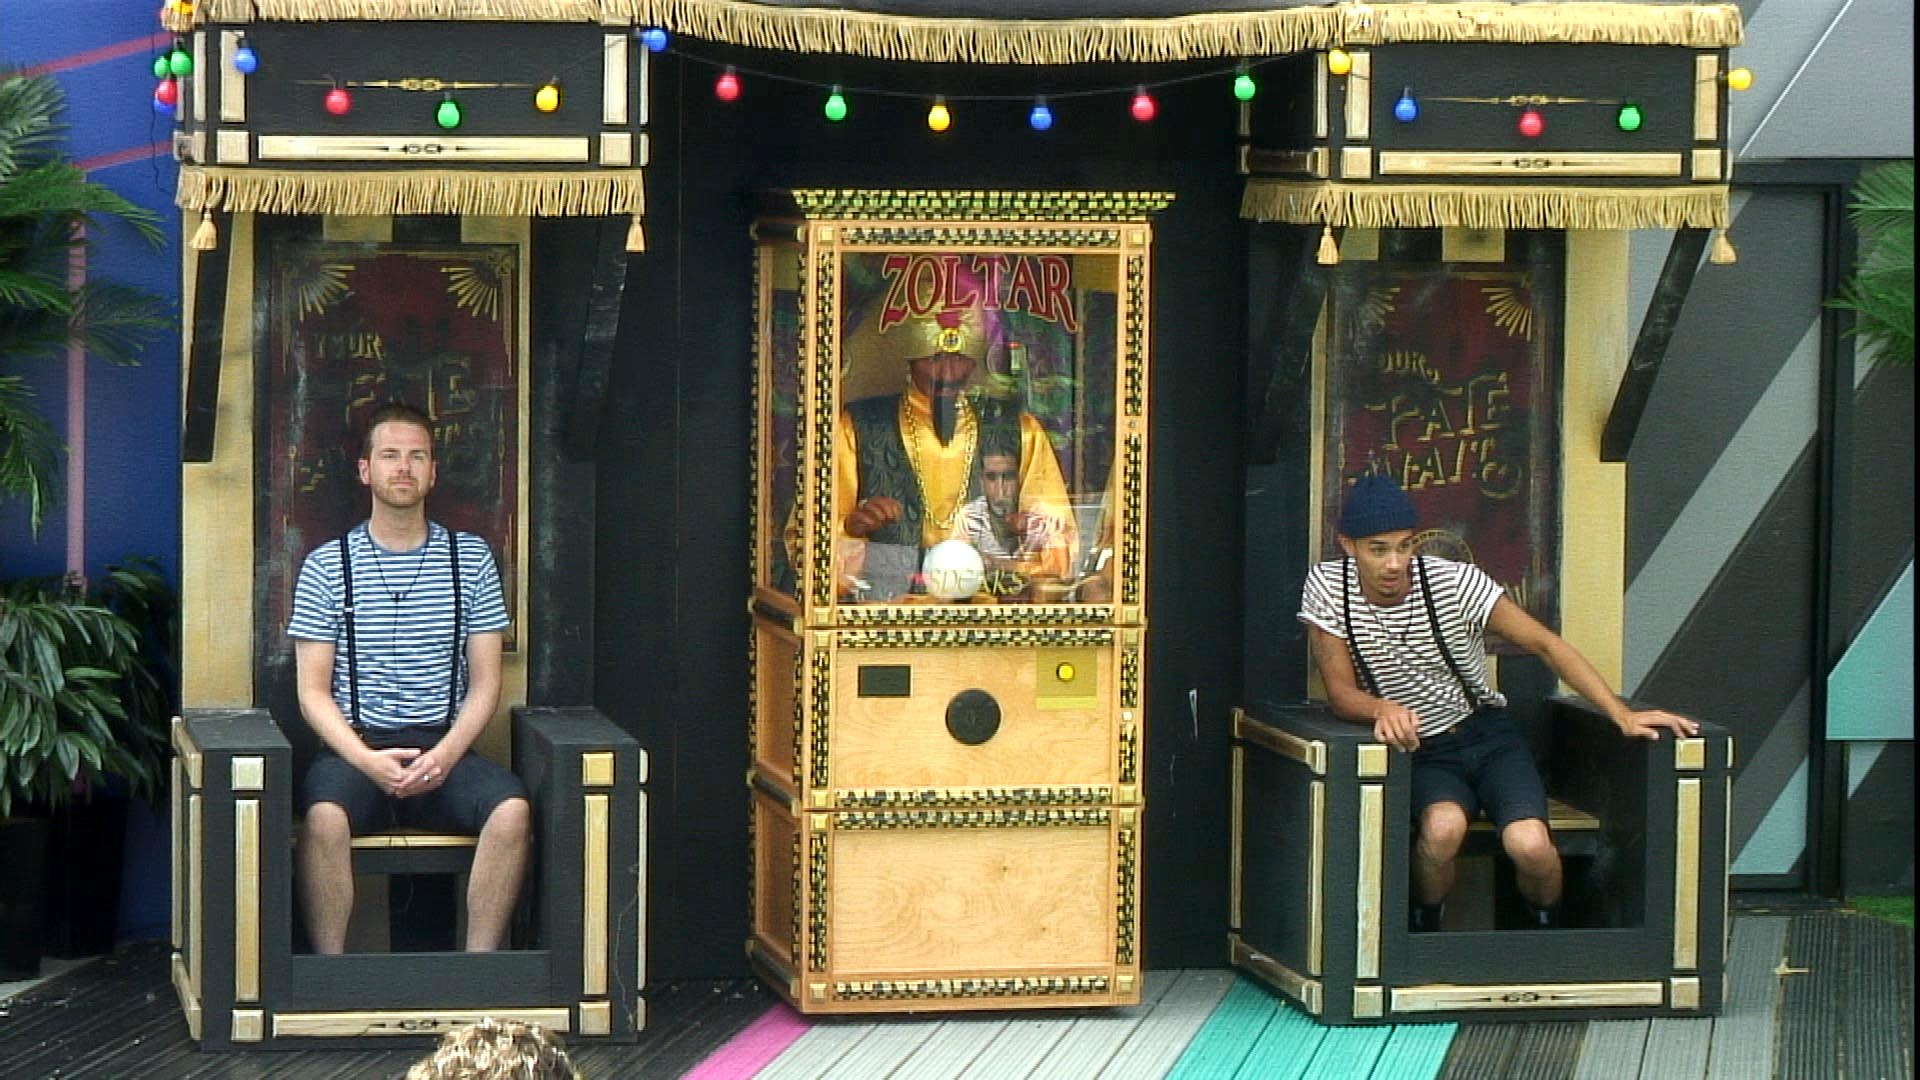 Day 49: Twisted Carnival sees two Housemates evicted from the House